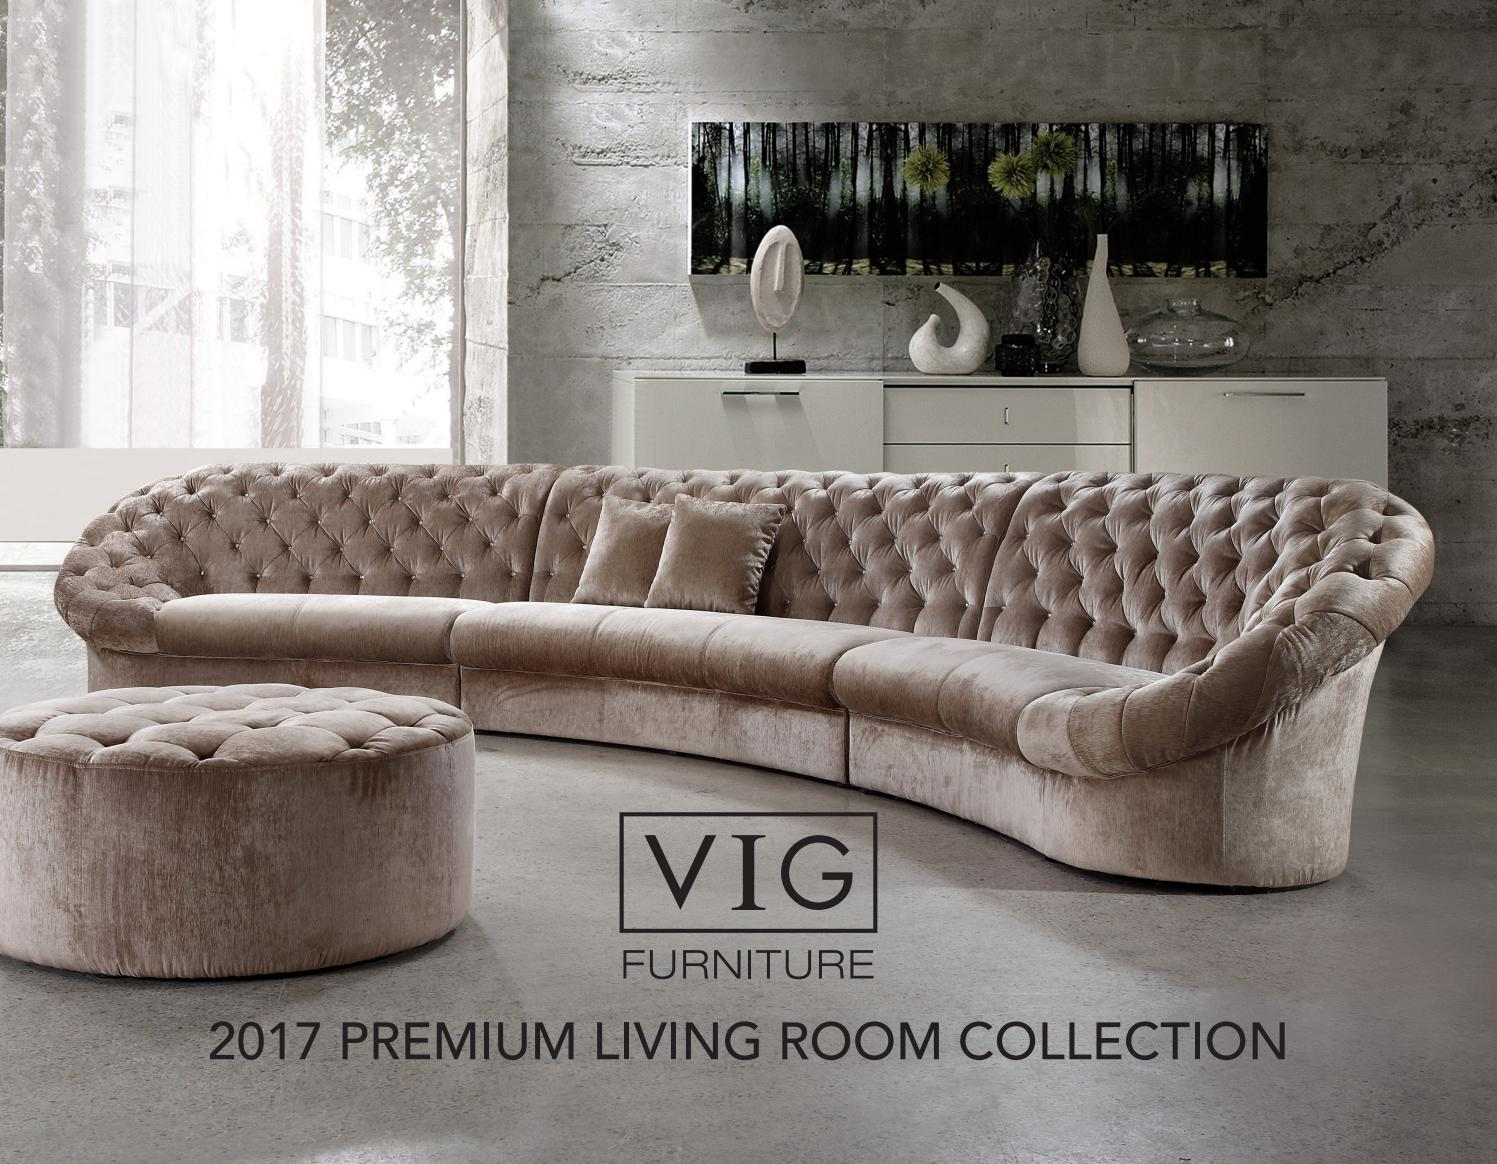 Vig Furniture 2017 Premium Living Room Collection By Inc Issuu